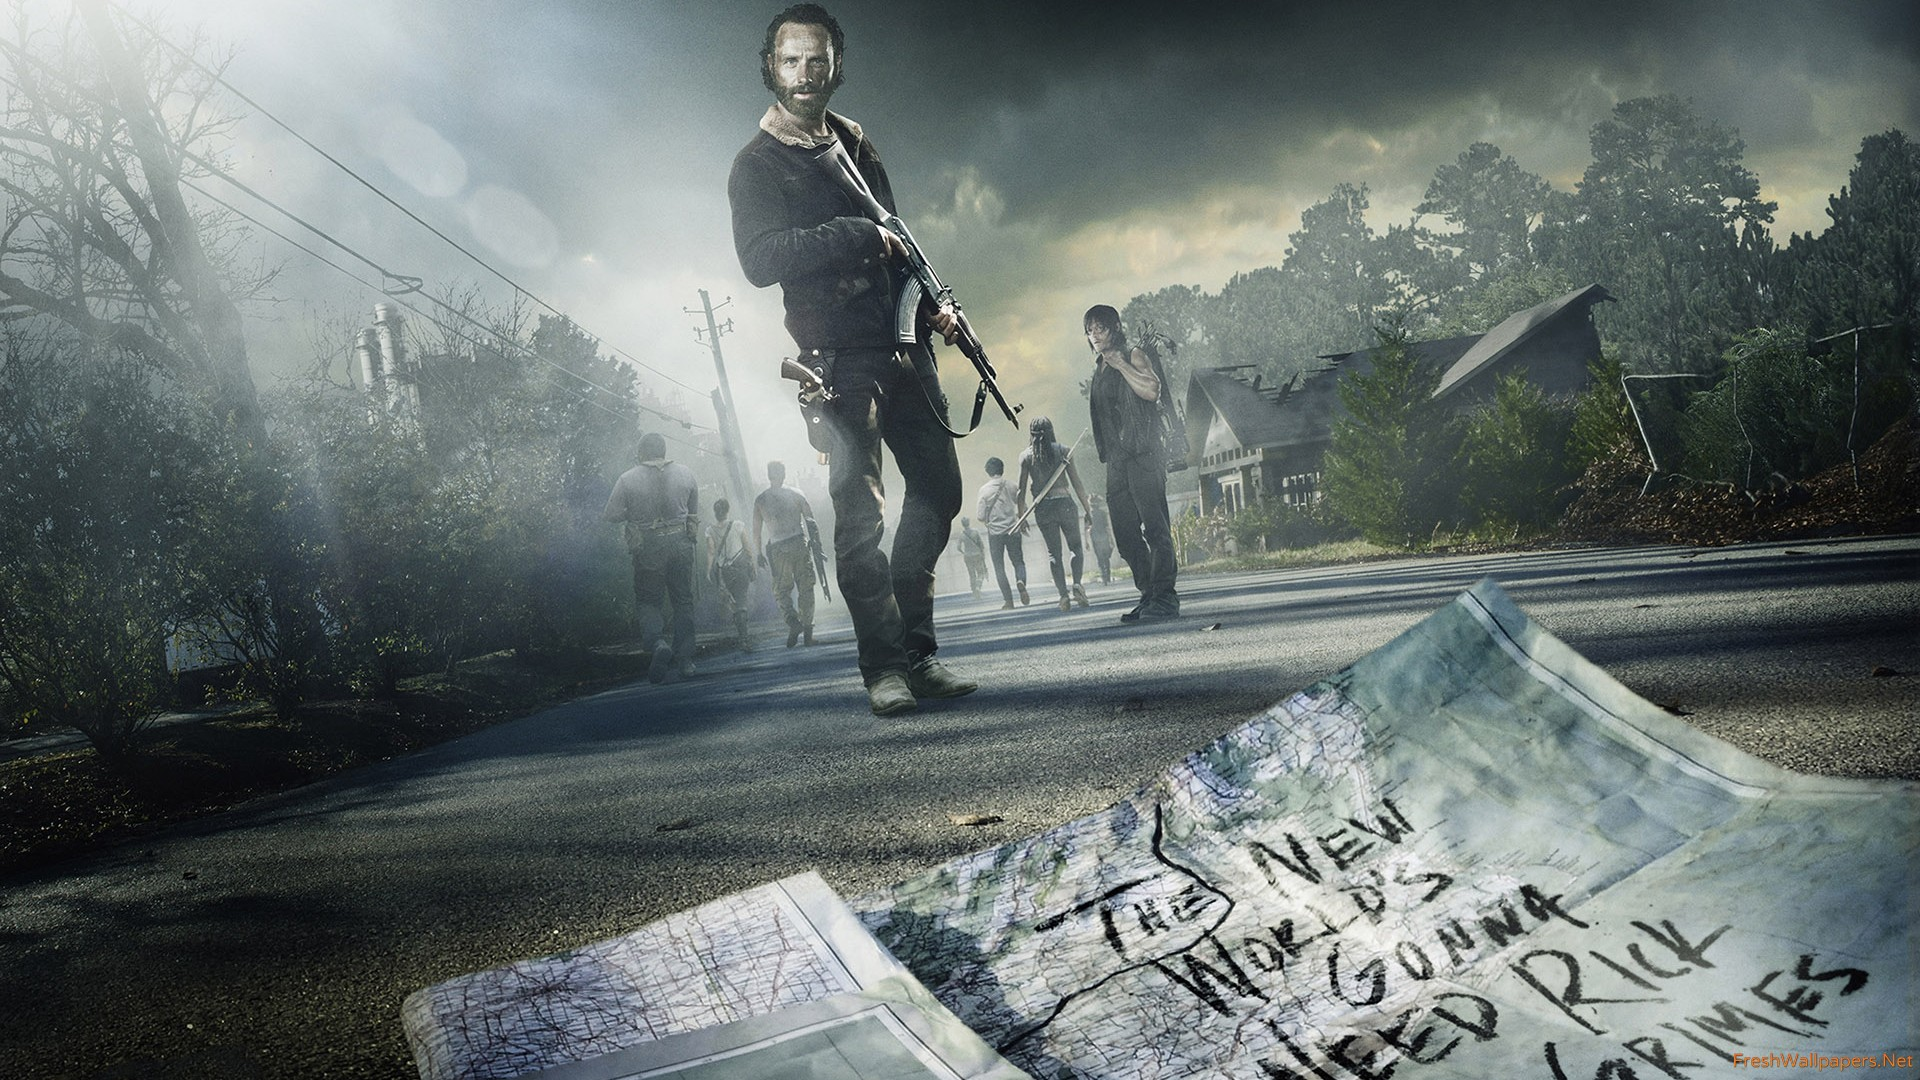 The Walking Dead Season 5 Midseason wallpapers | Freshwallpapers